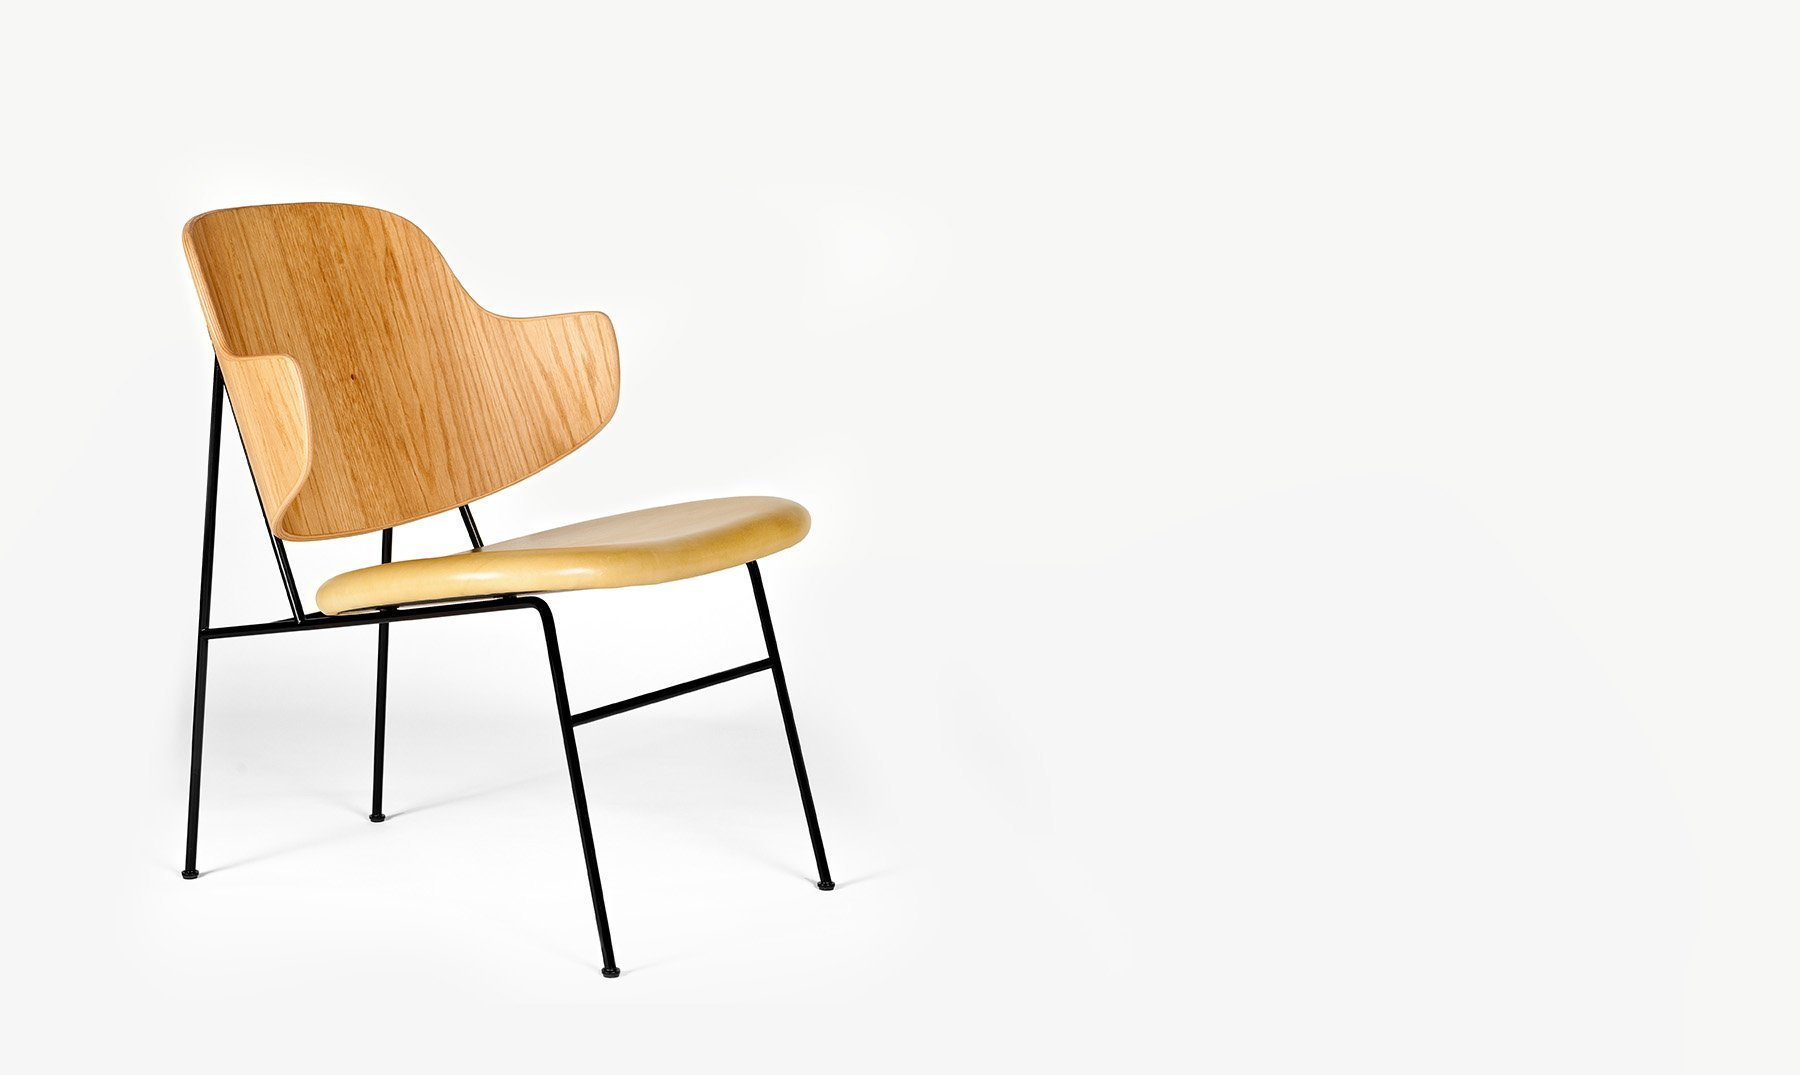 Penguin Chair x「Social Pattern」∘ Black Edition, €1390, KVIUM · CURATED BY DOMICILECULTURE